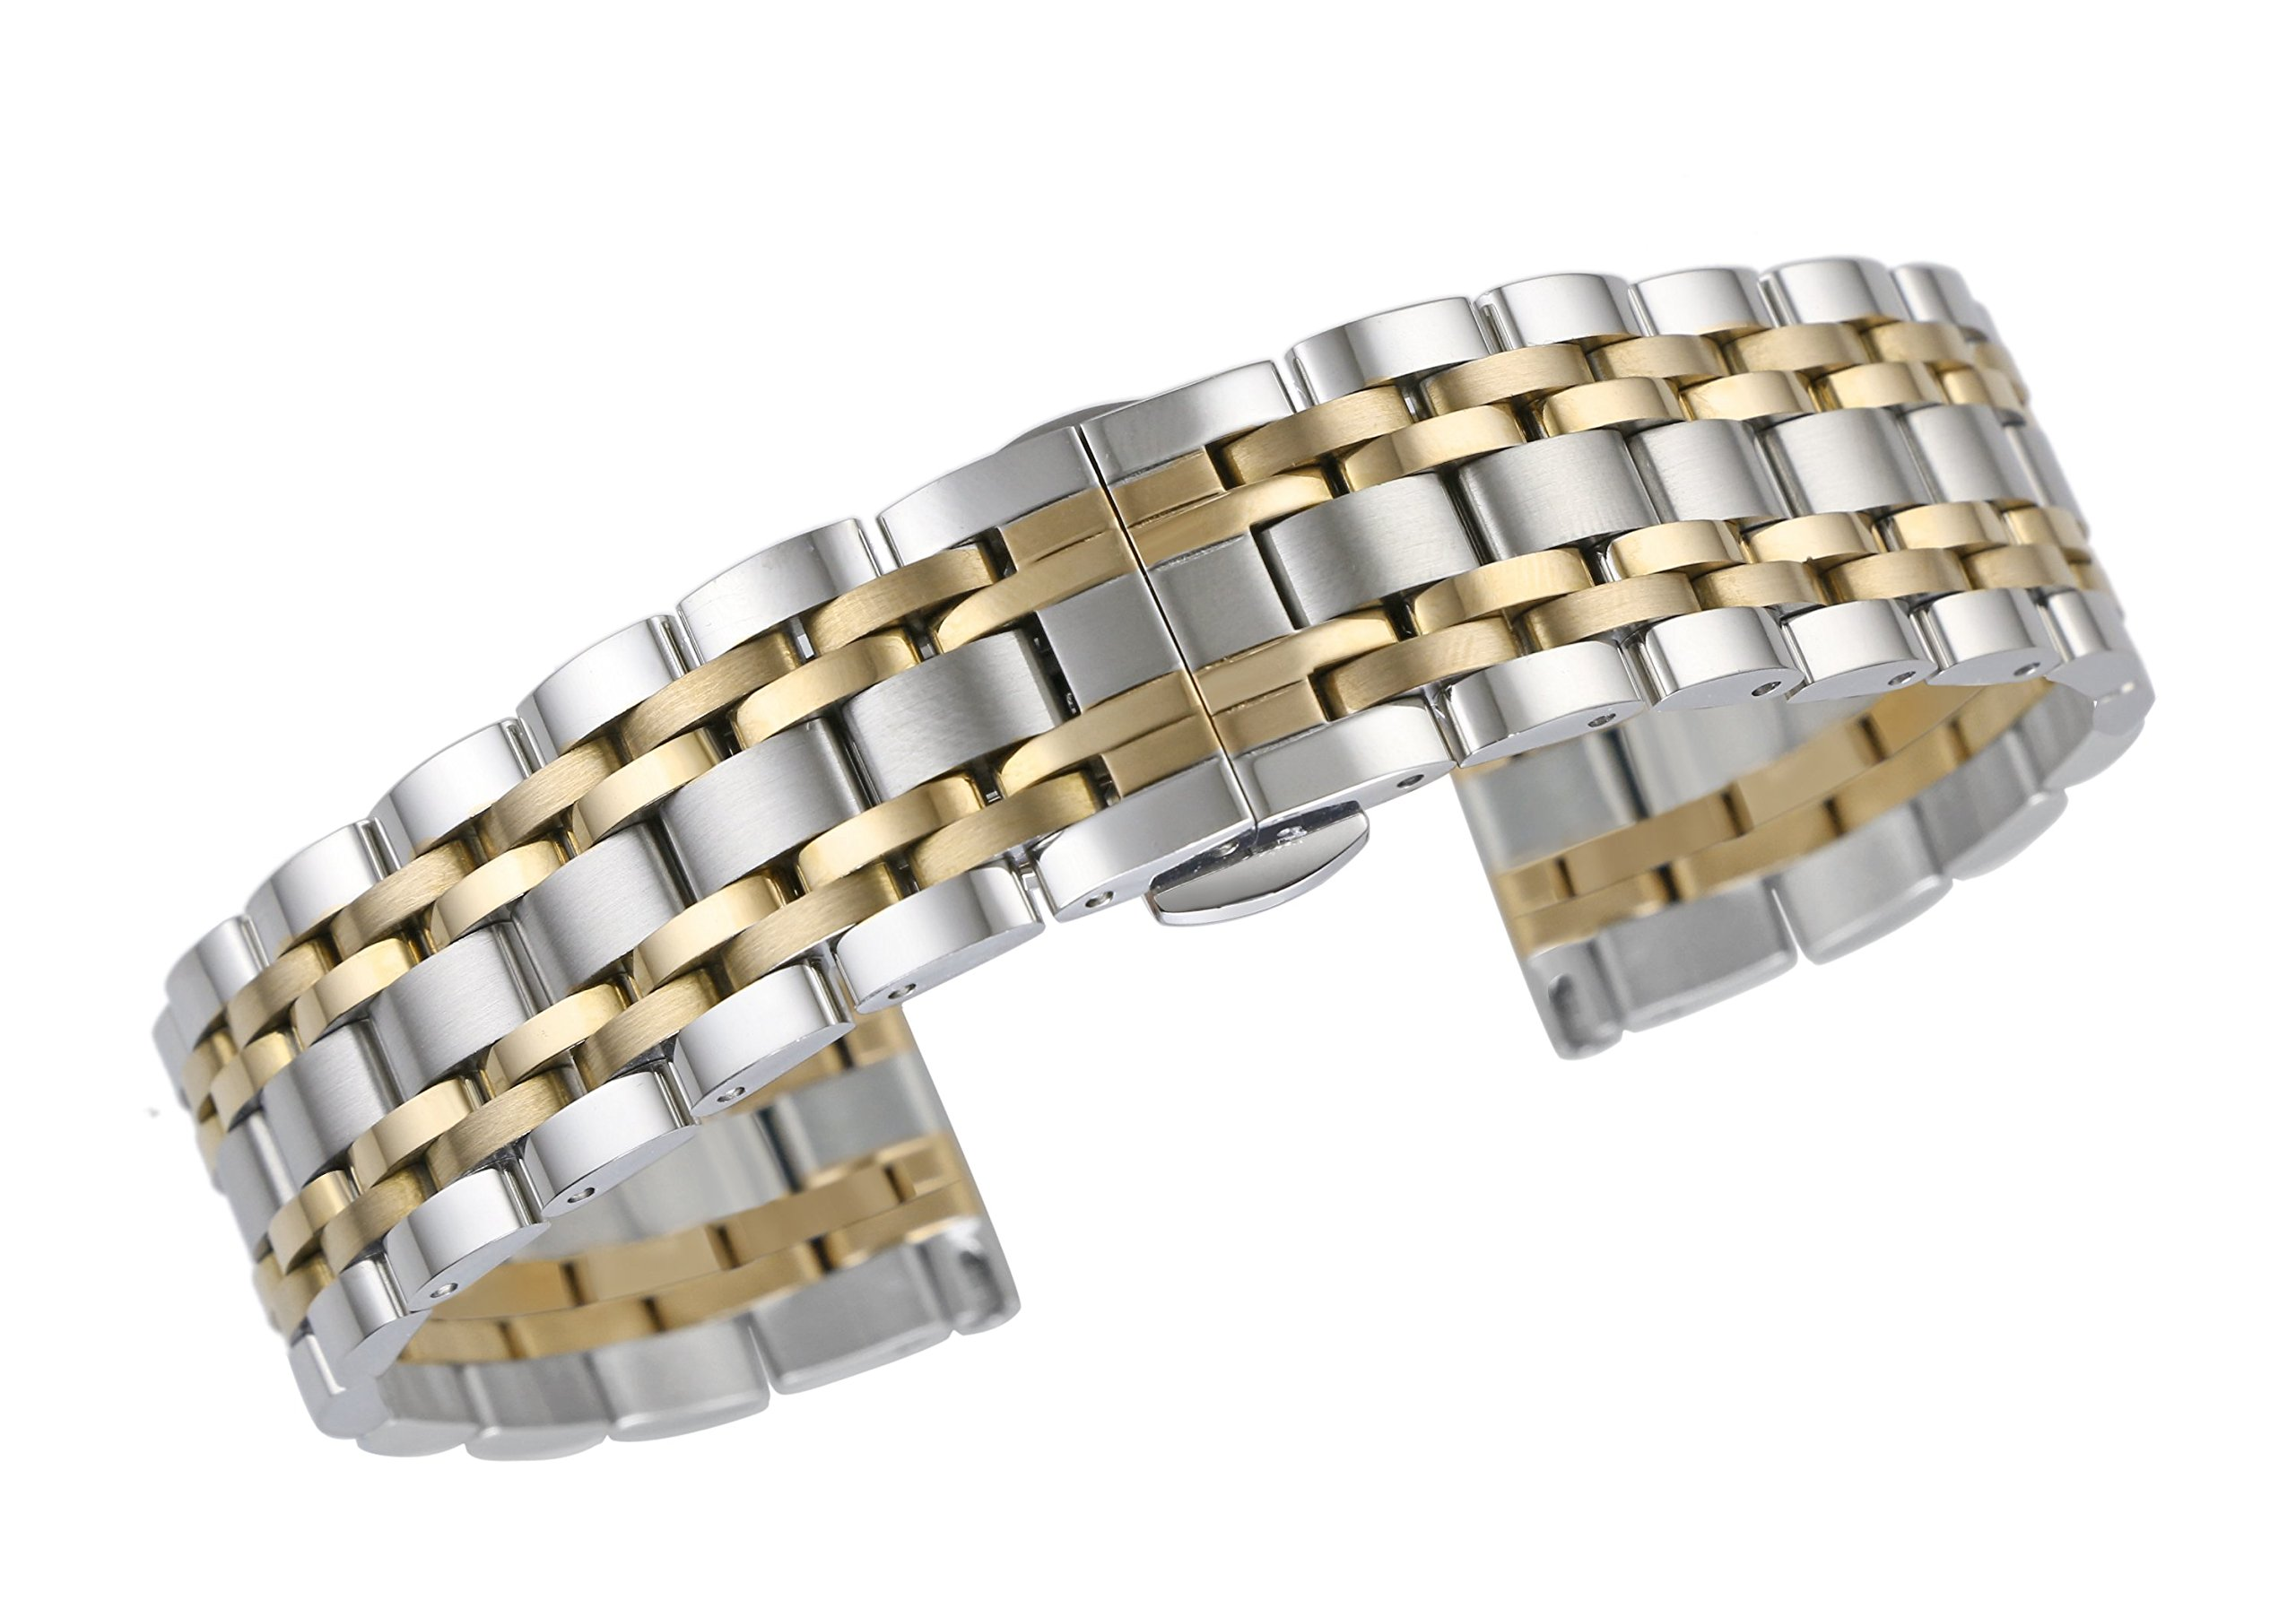 17mm Deluxe Dual Tone Watch Strap in Two Tone Silver and Gold Solid Stainless Steel with Deployment Clasp by autulet